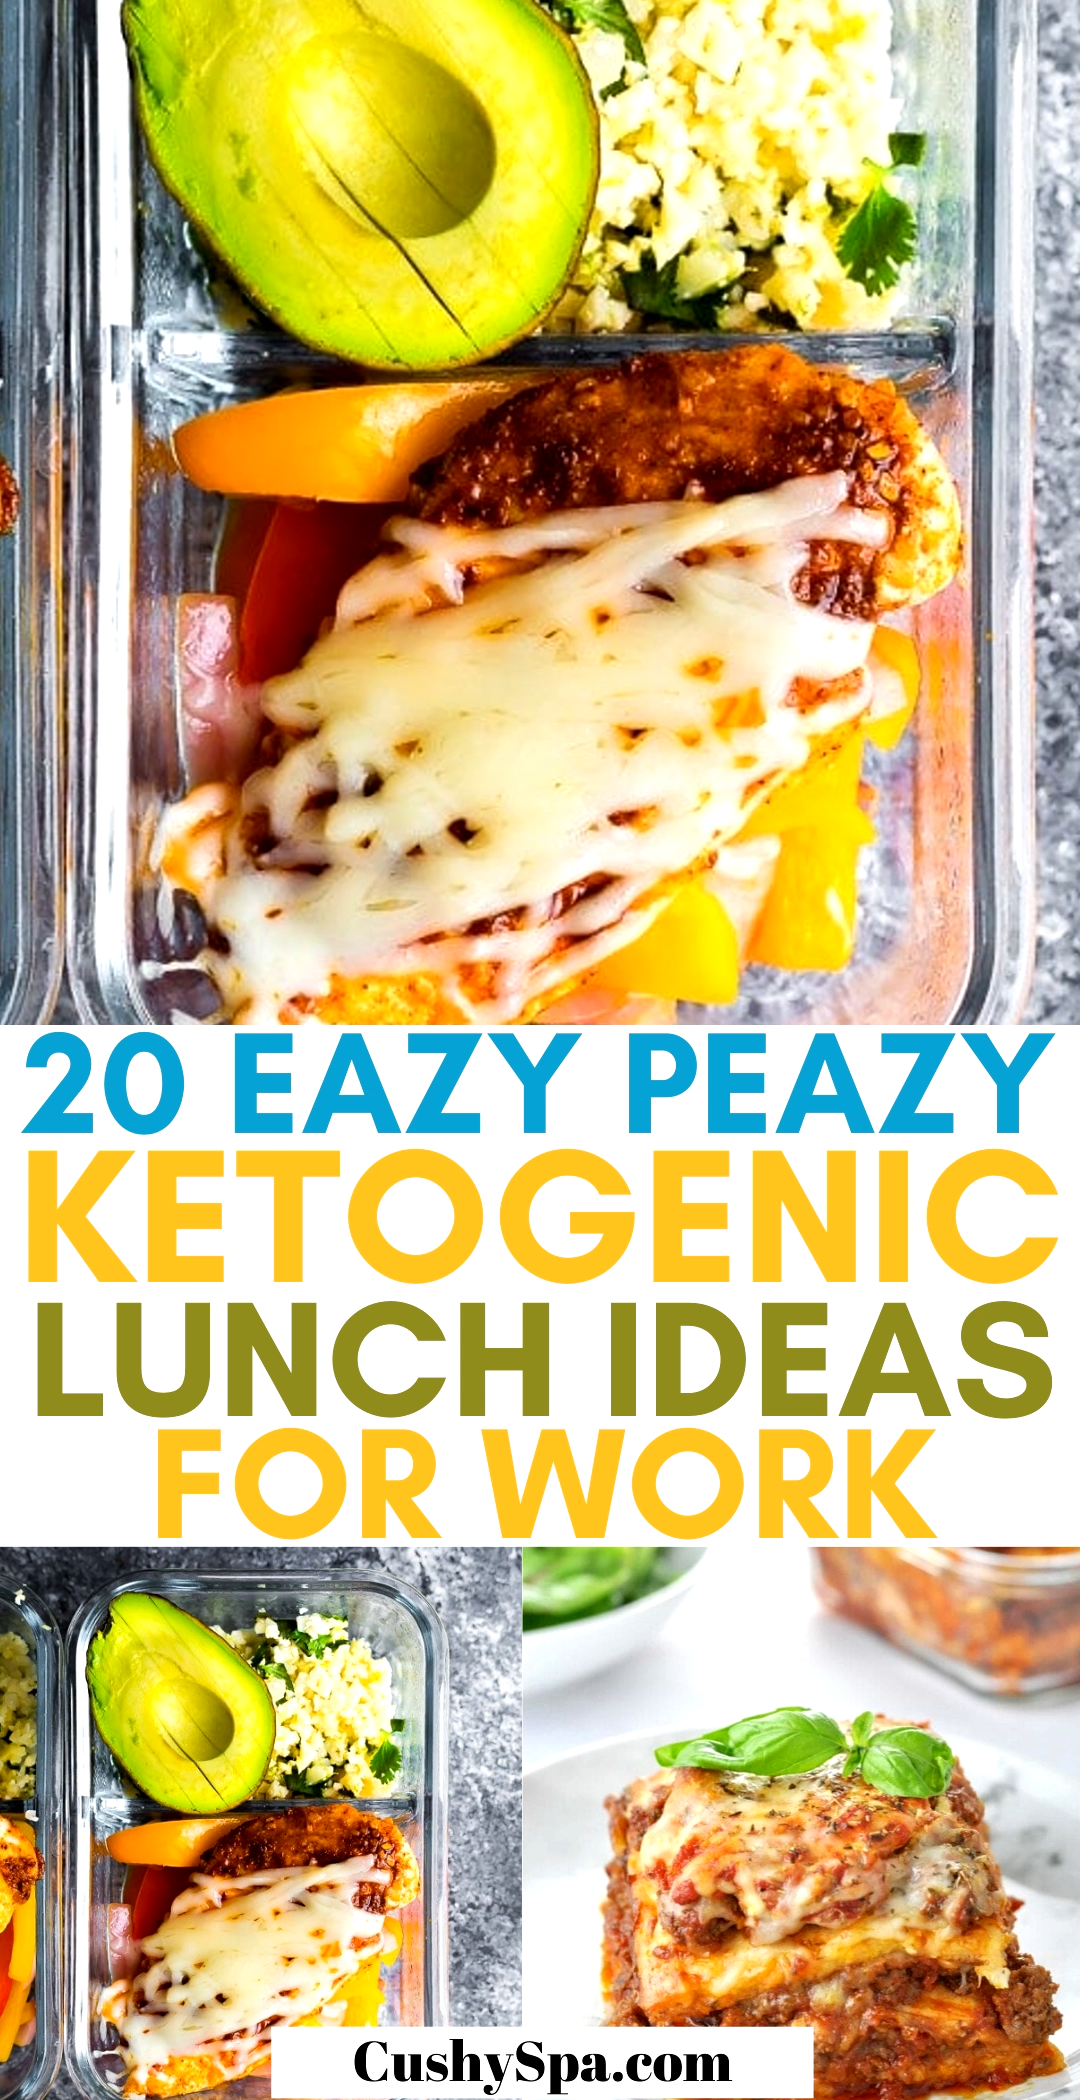 Keto diet for beginners can be difficult and that's where meal prepping comes in handy. Make these keto lunch meals for the week, enjoy your low carb meal prep and stay in ketosis with these keto recipes easier.